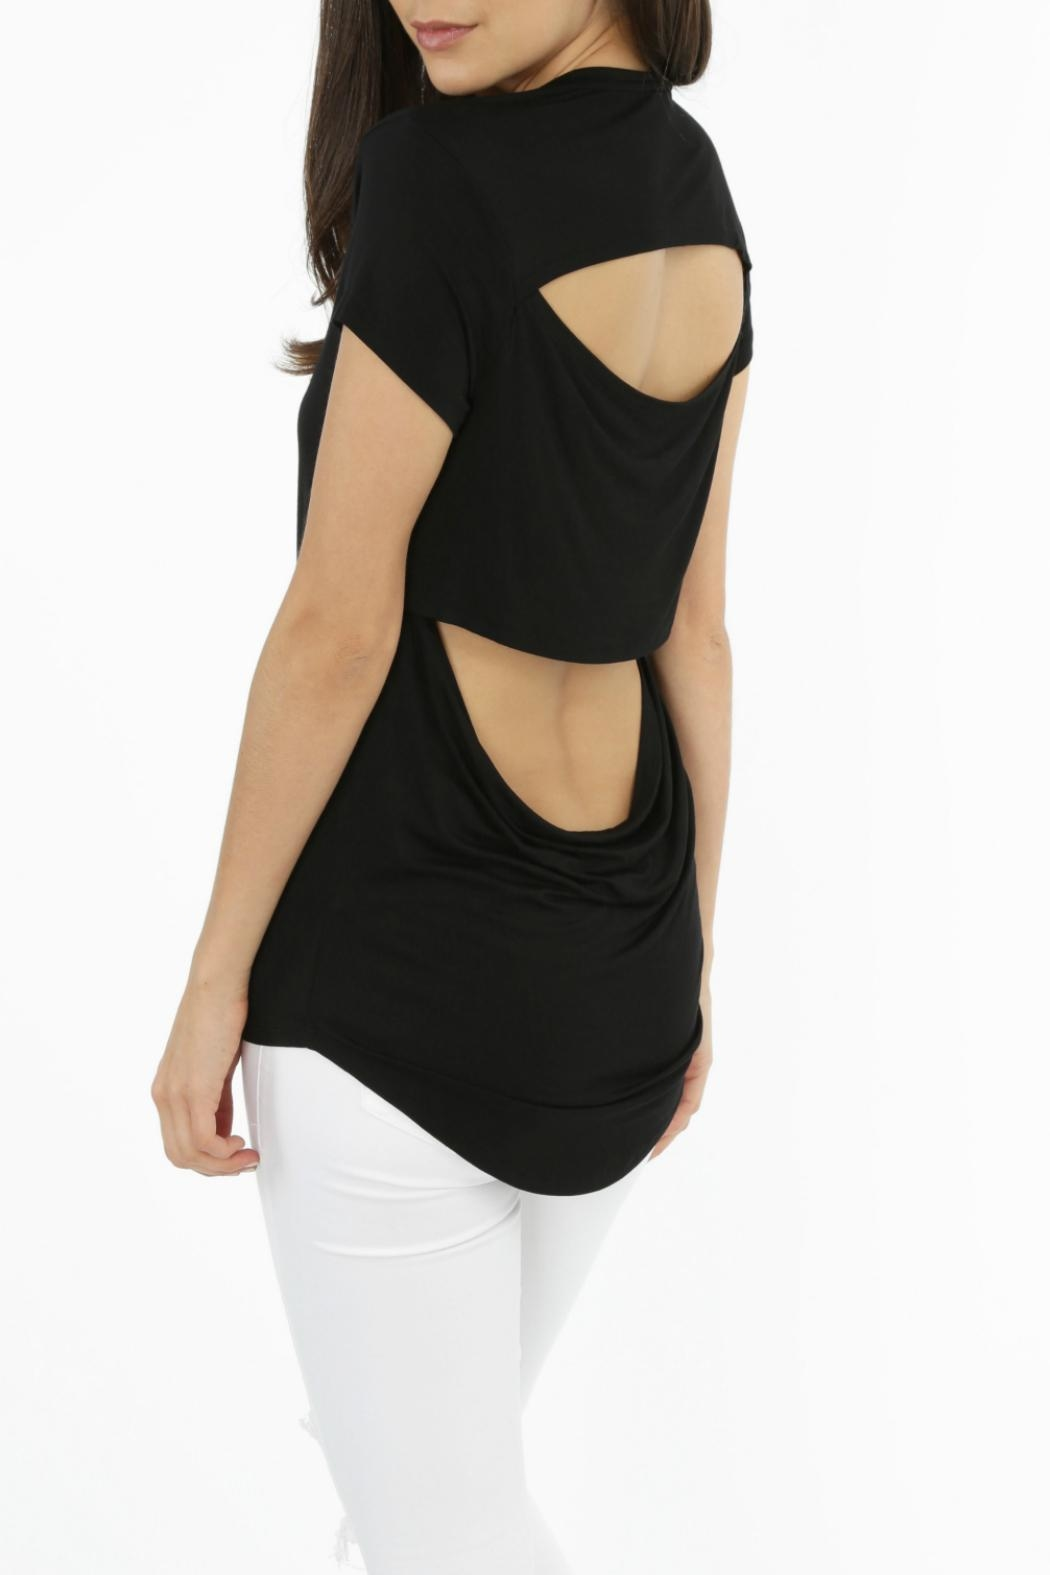 Bobi Los Angeles Cutout Back Tee - Front Cropped Image